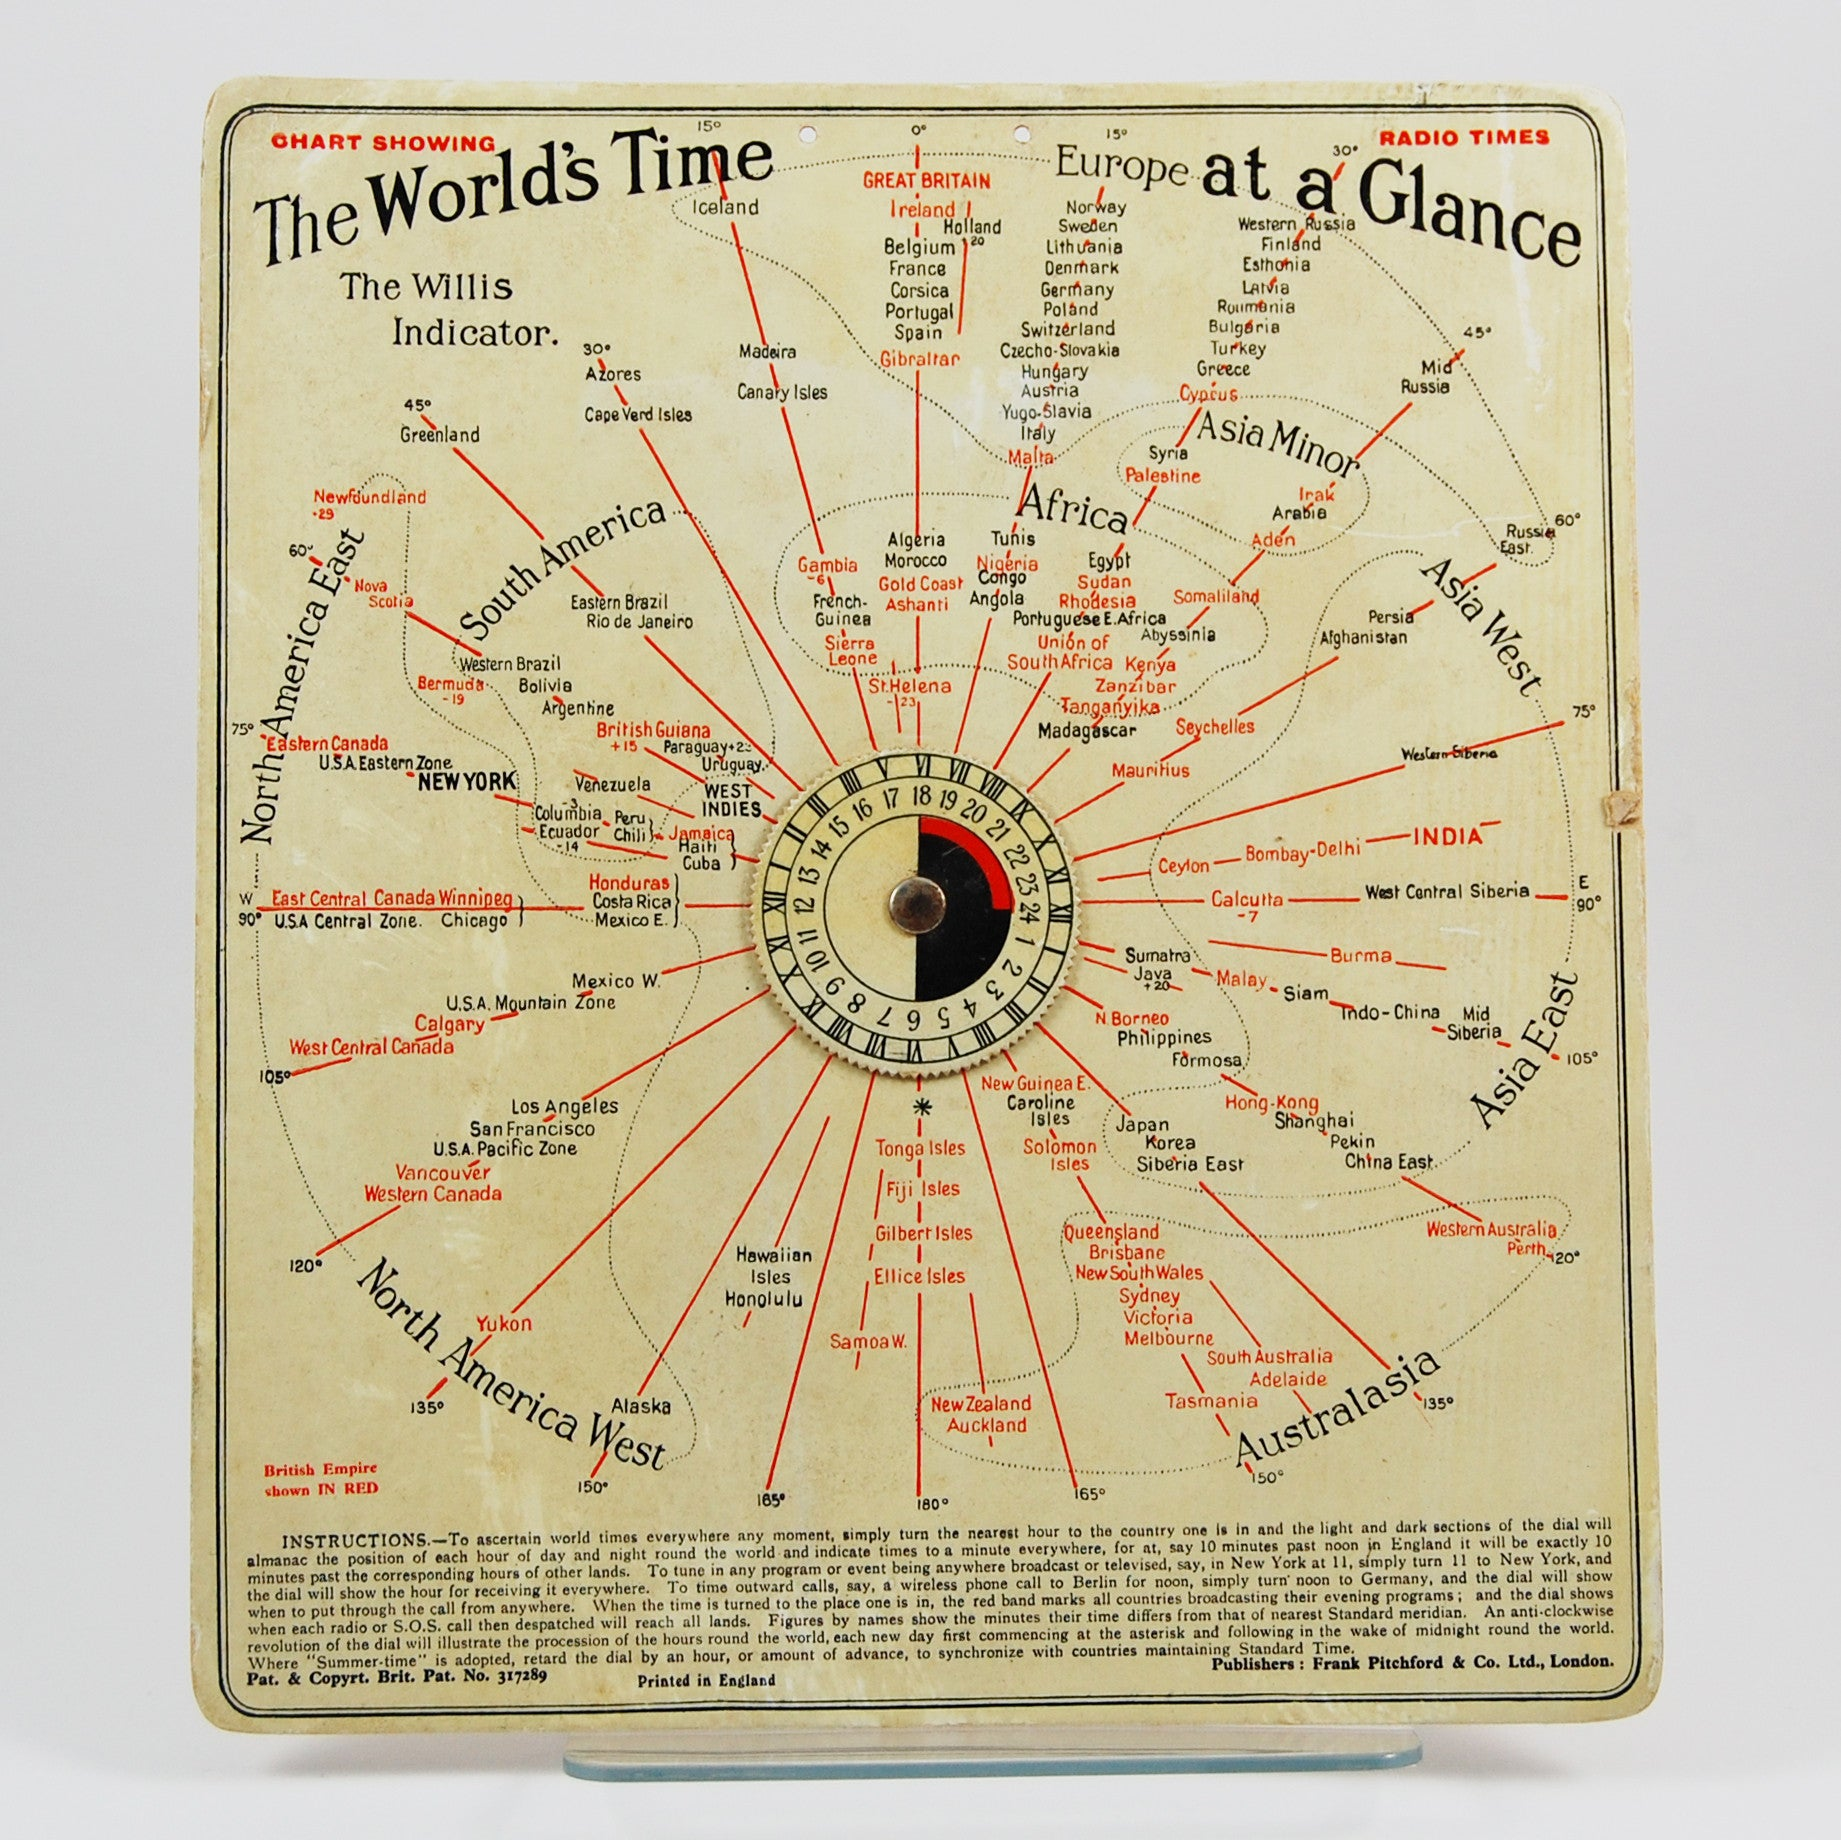 Willis, J. H. | The World's Time at a Glance. The Willis Indicator.